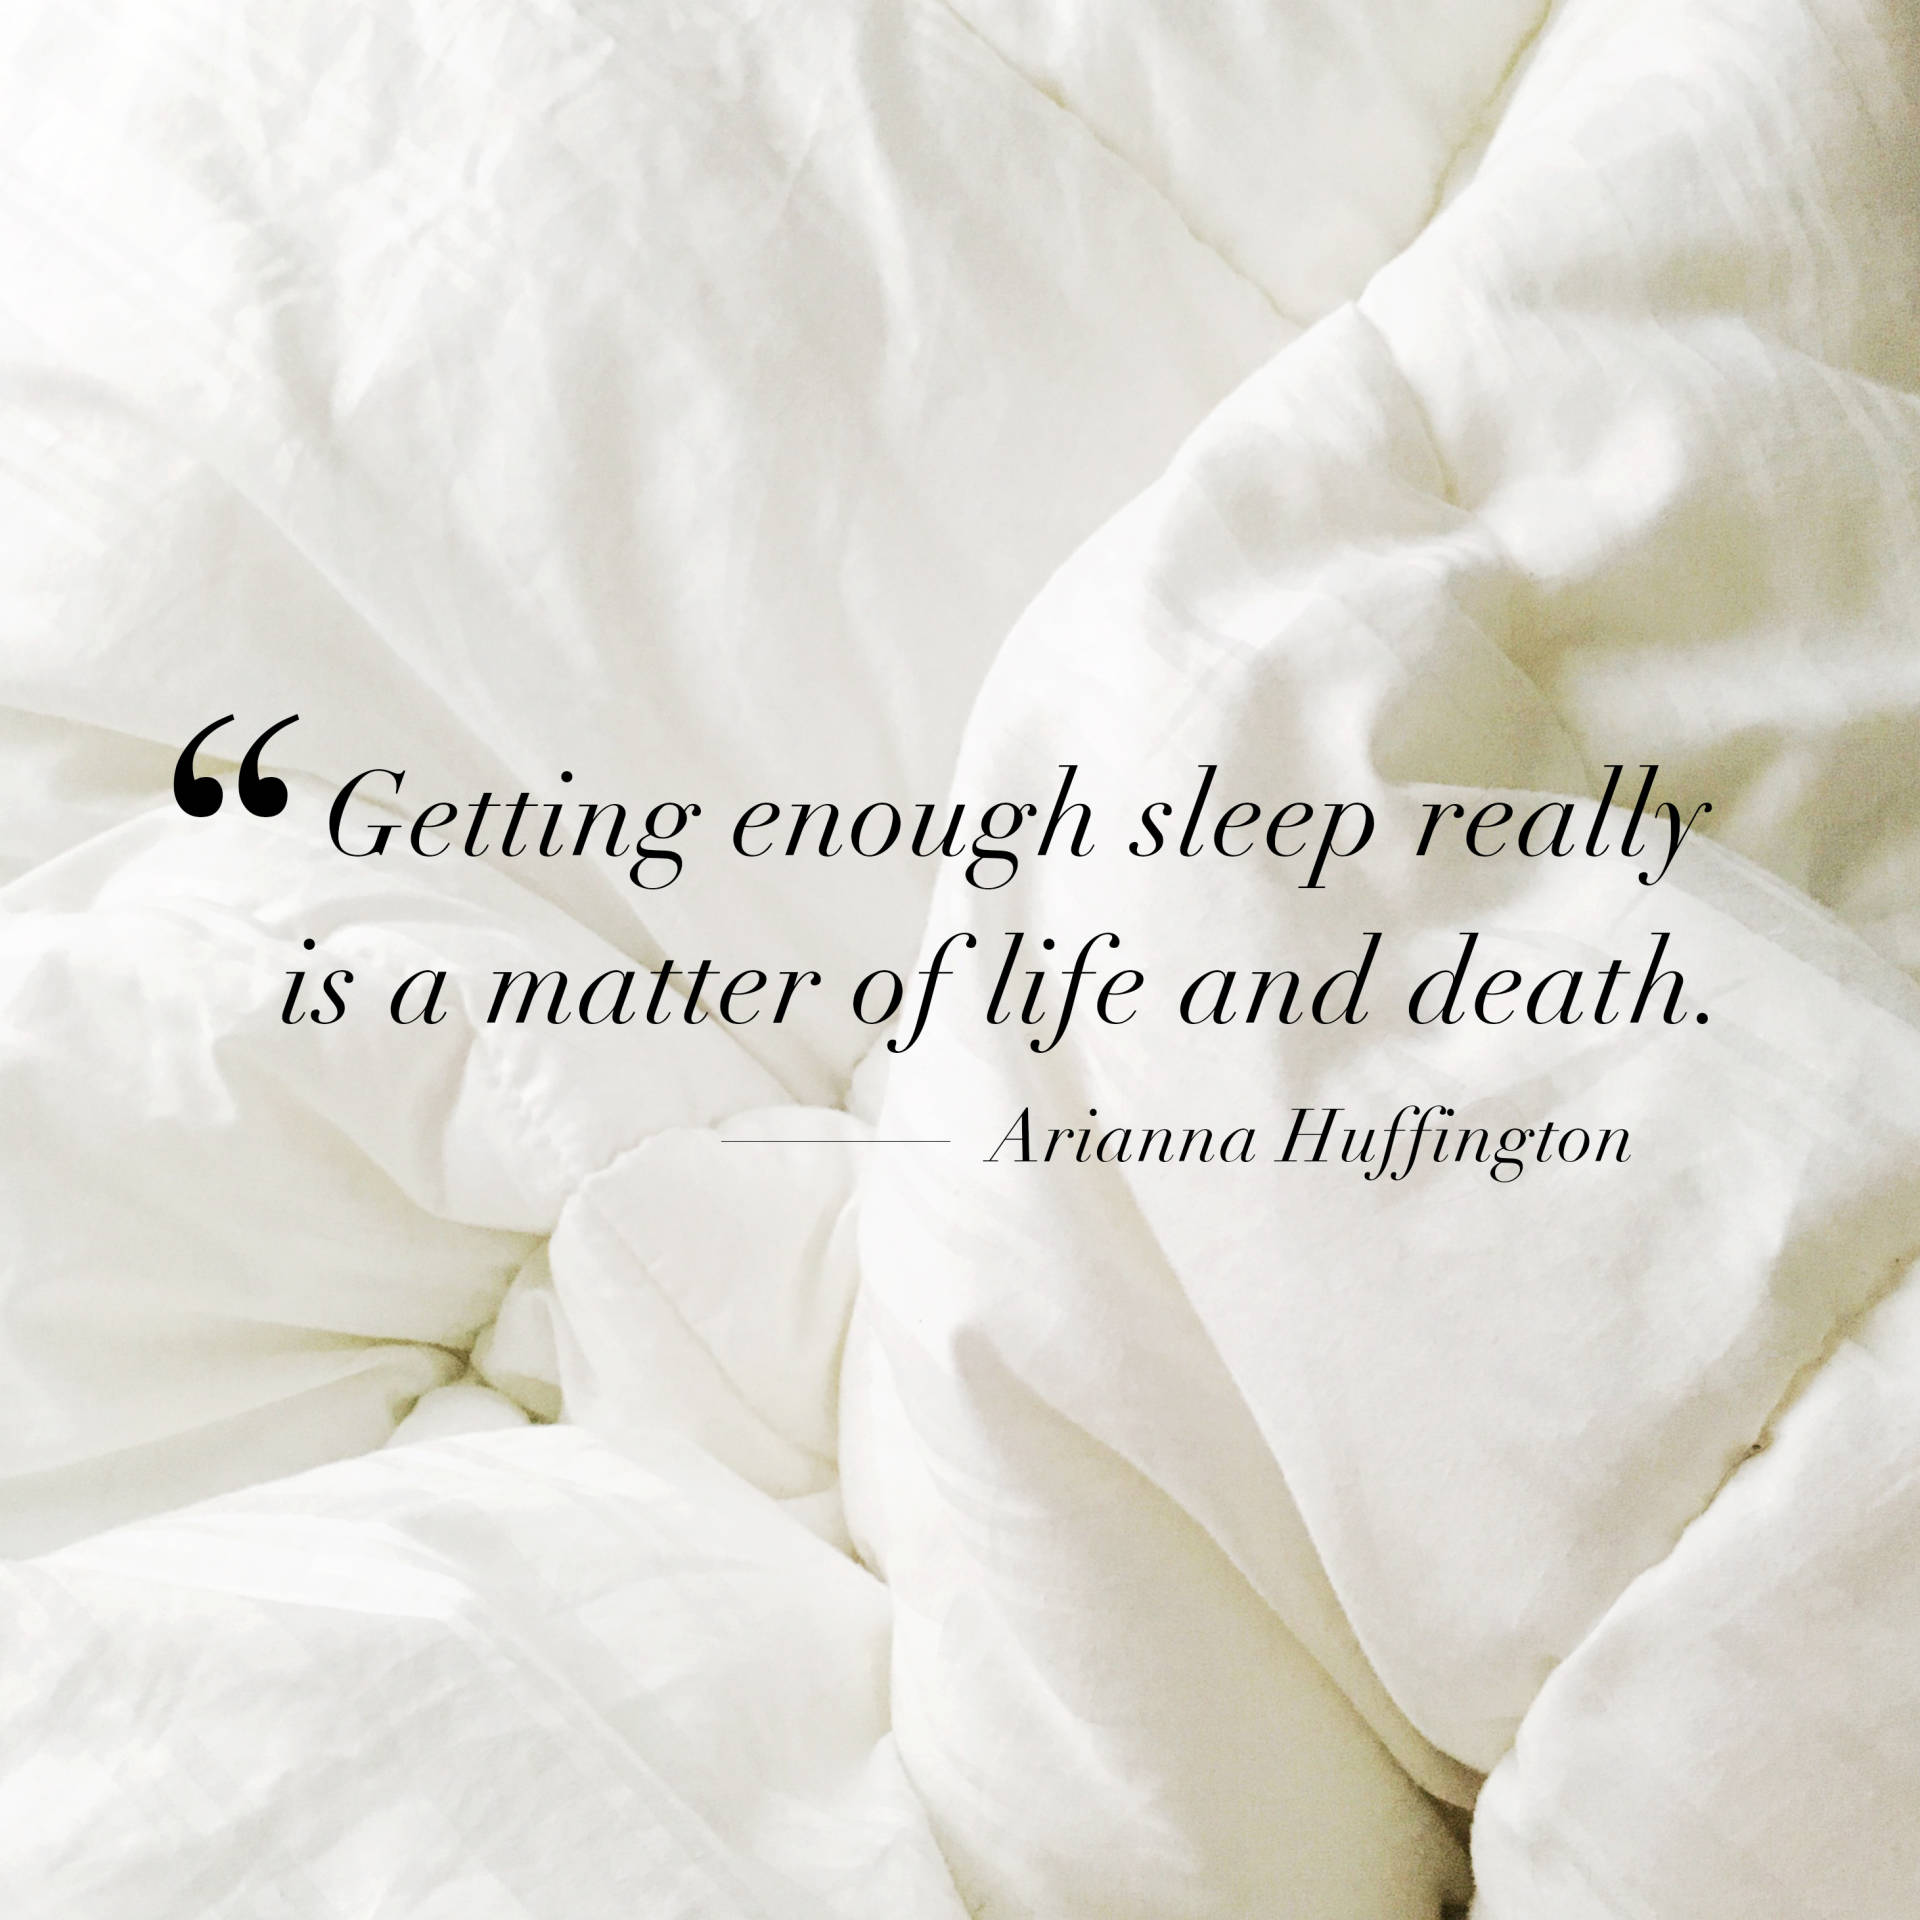 Getting enough sleep really is a matter of life and death - Arianna Huffington